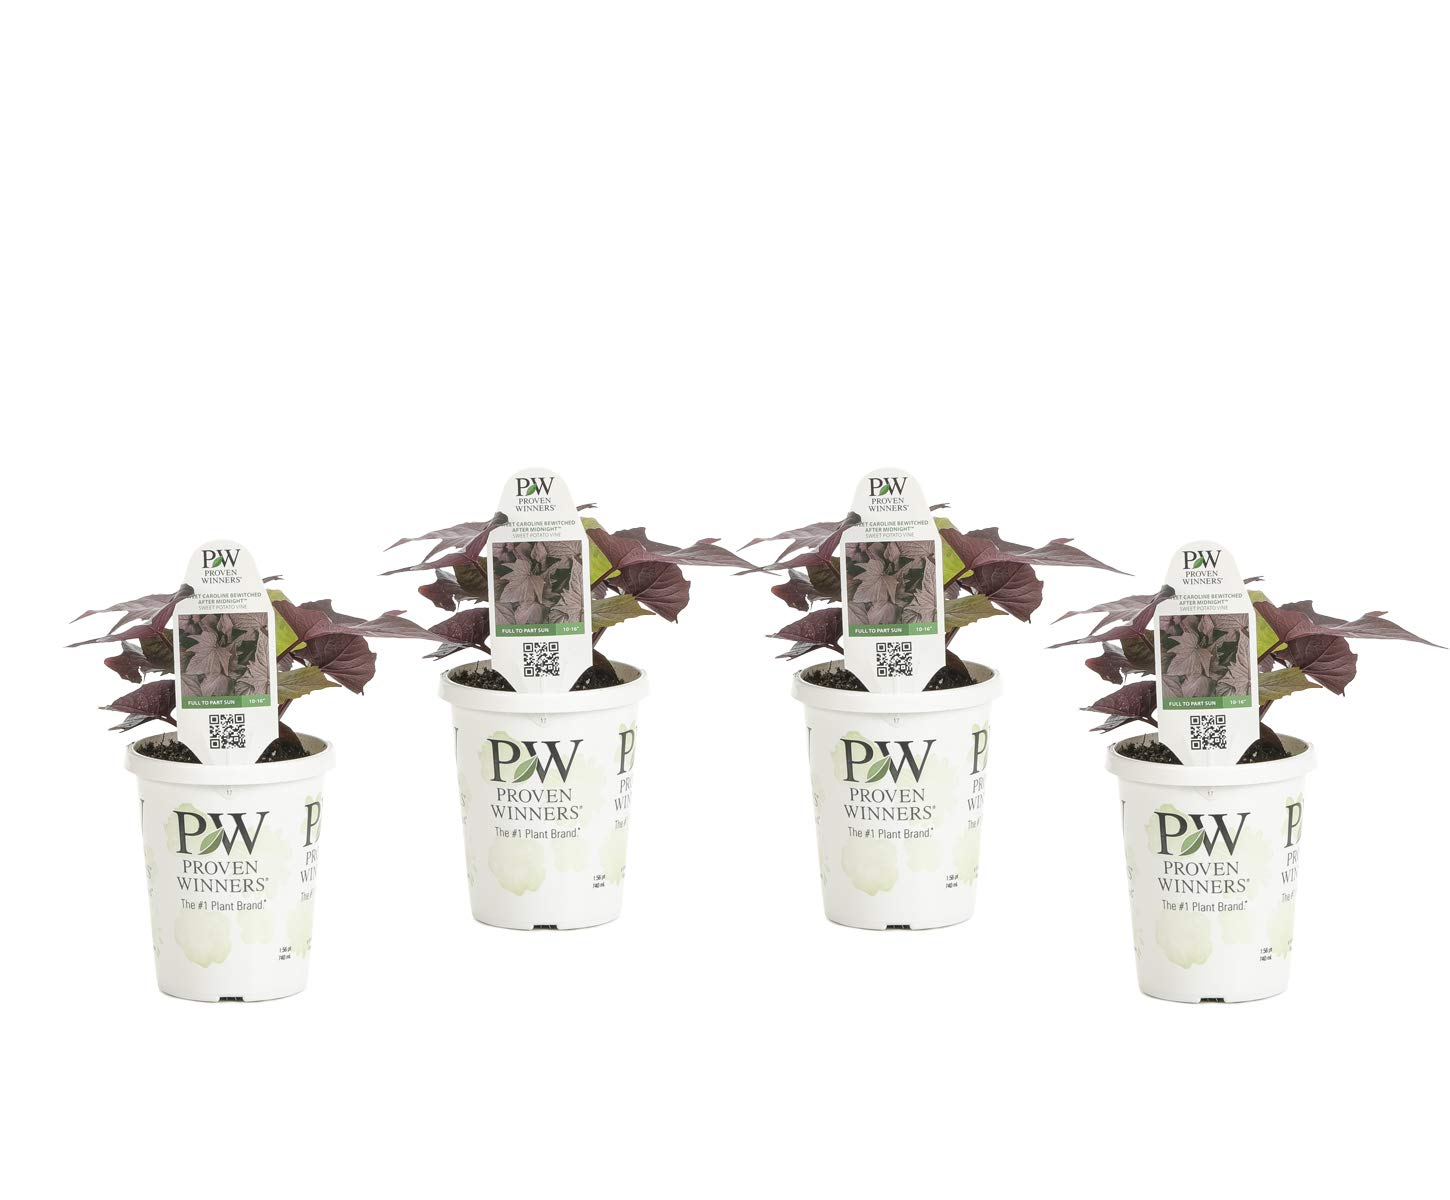 Bewitched After Midnight Sweet PotatoVine(Ipomoea) Live Plant, Deep Purple Foliage, 4.25 in. Grande,4-pack